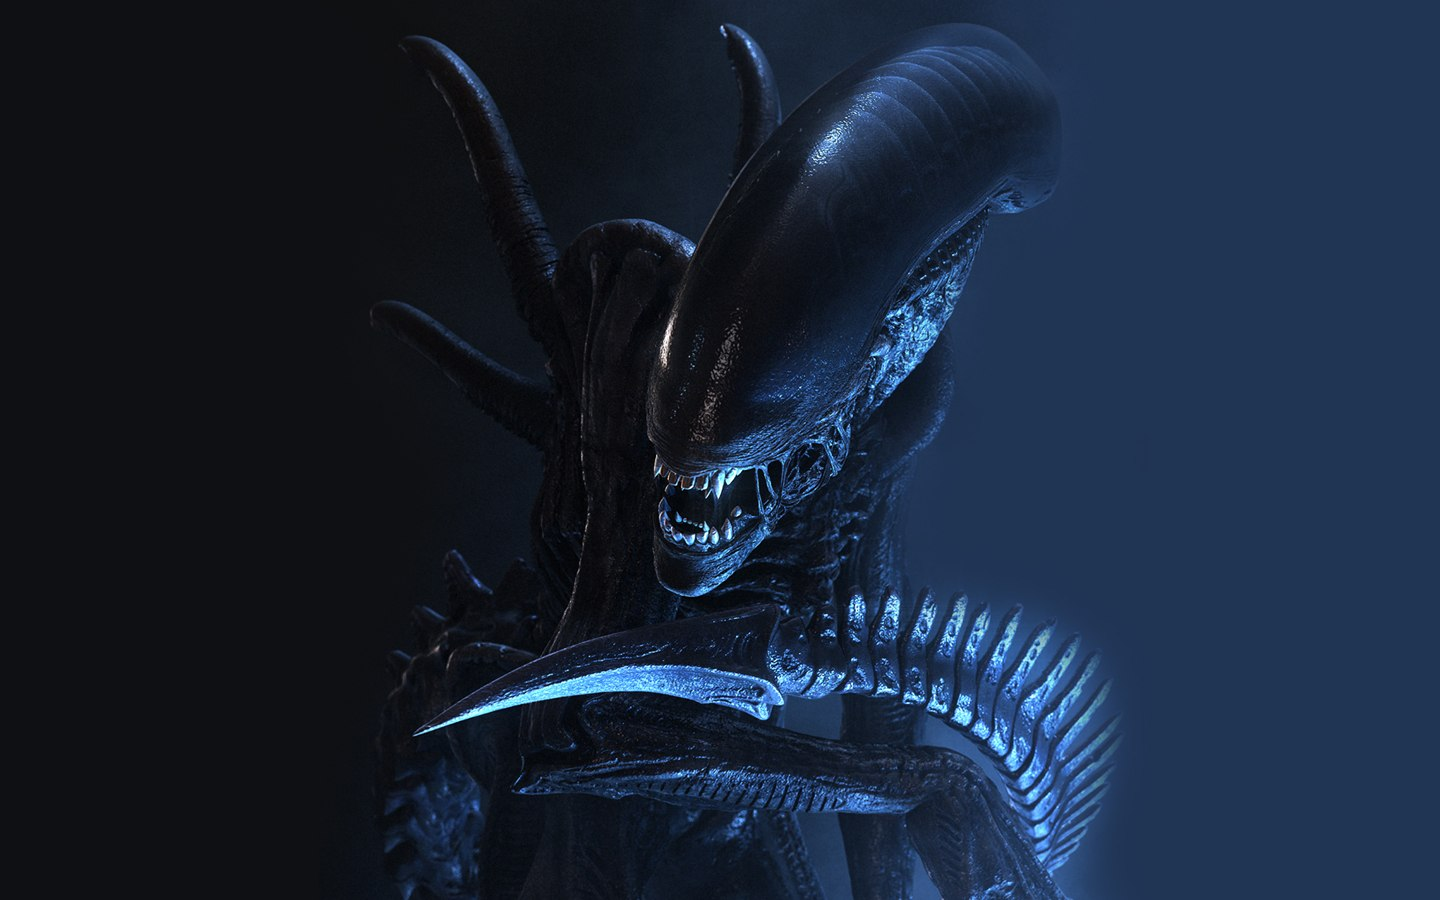 Alien wallpaper 1440x900   32462   High Quality and Resolution 1440x900